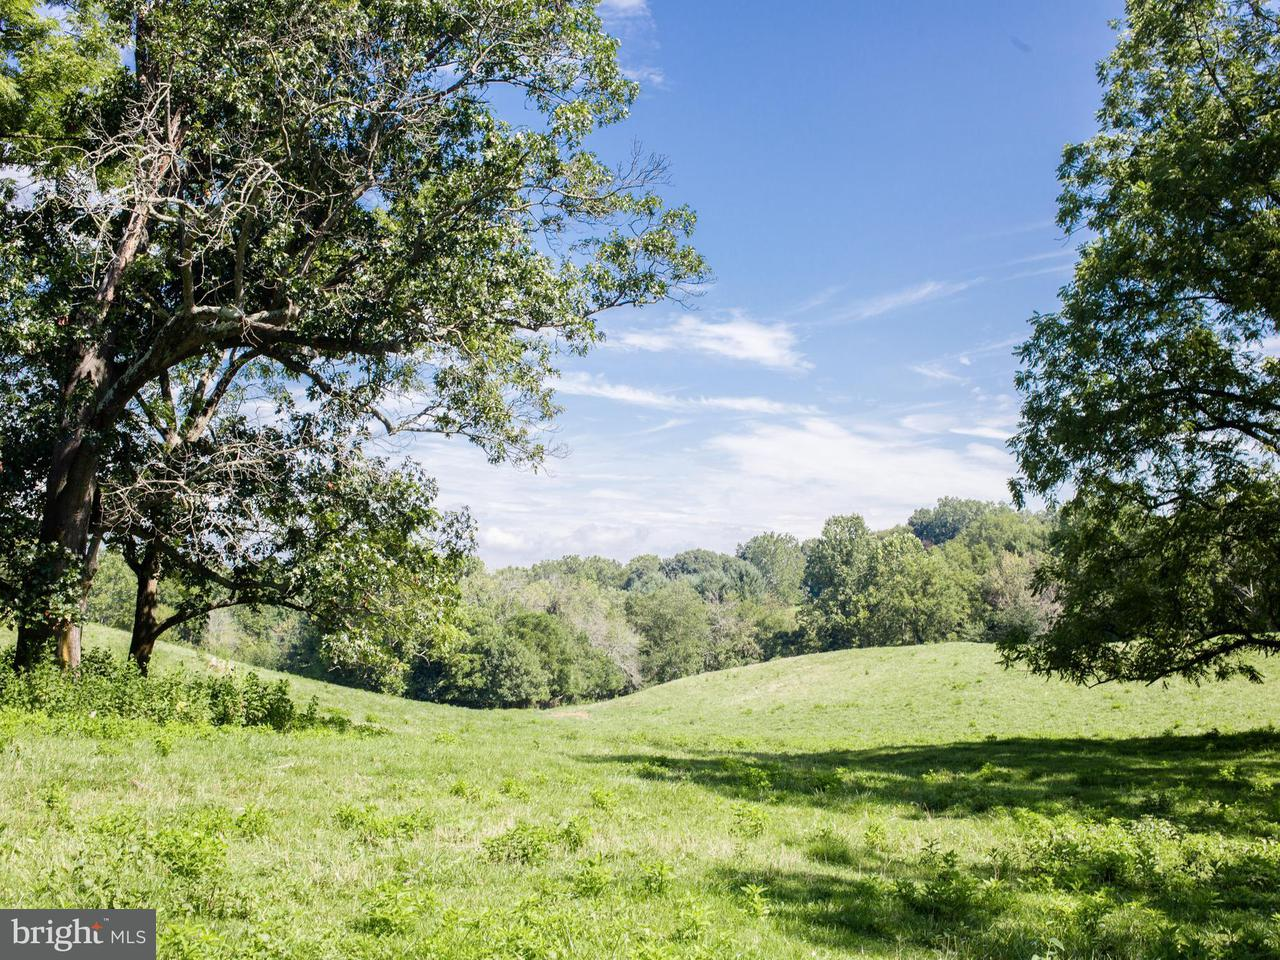 Land for Sale at Maidstone Rd Rectortown, Virginia 20140 United States